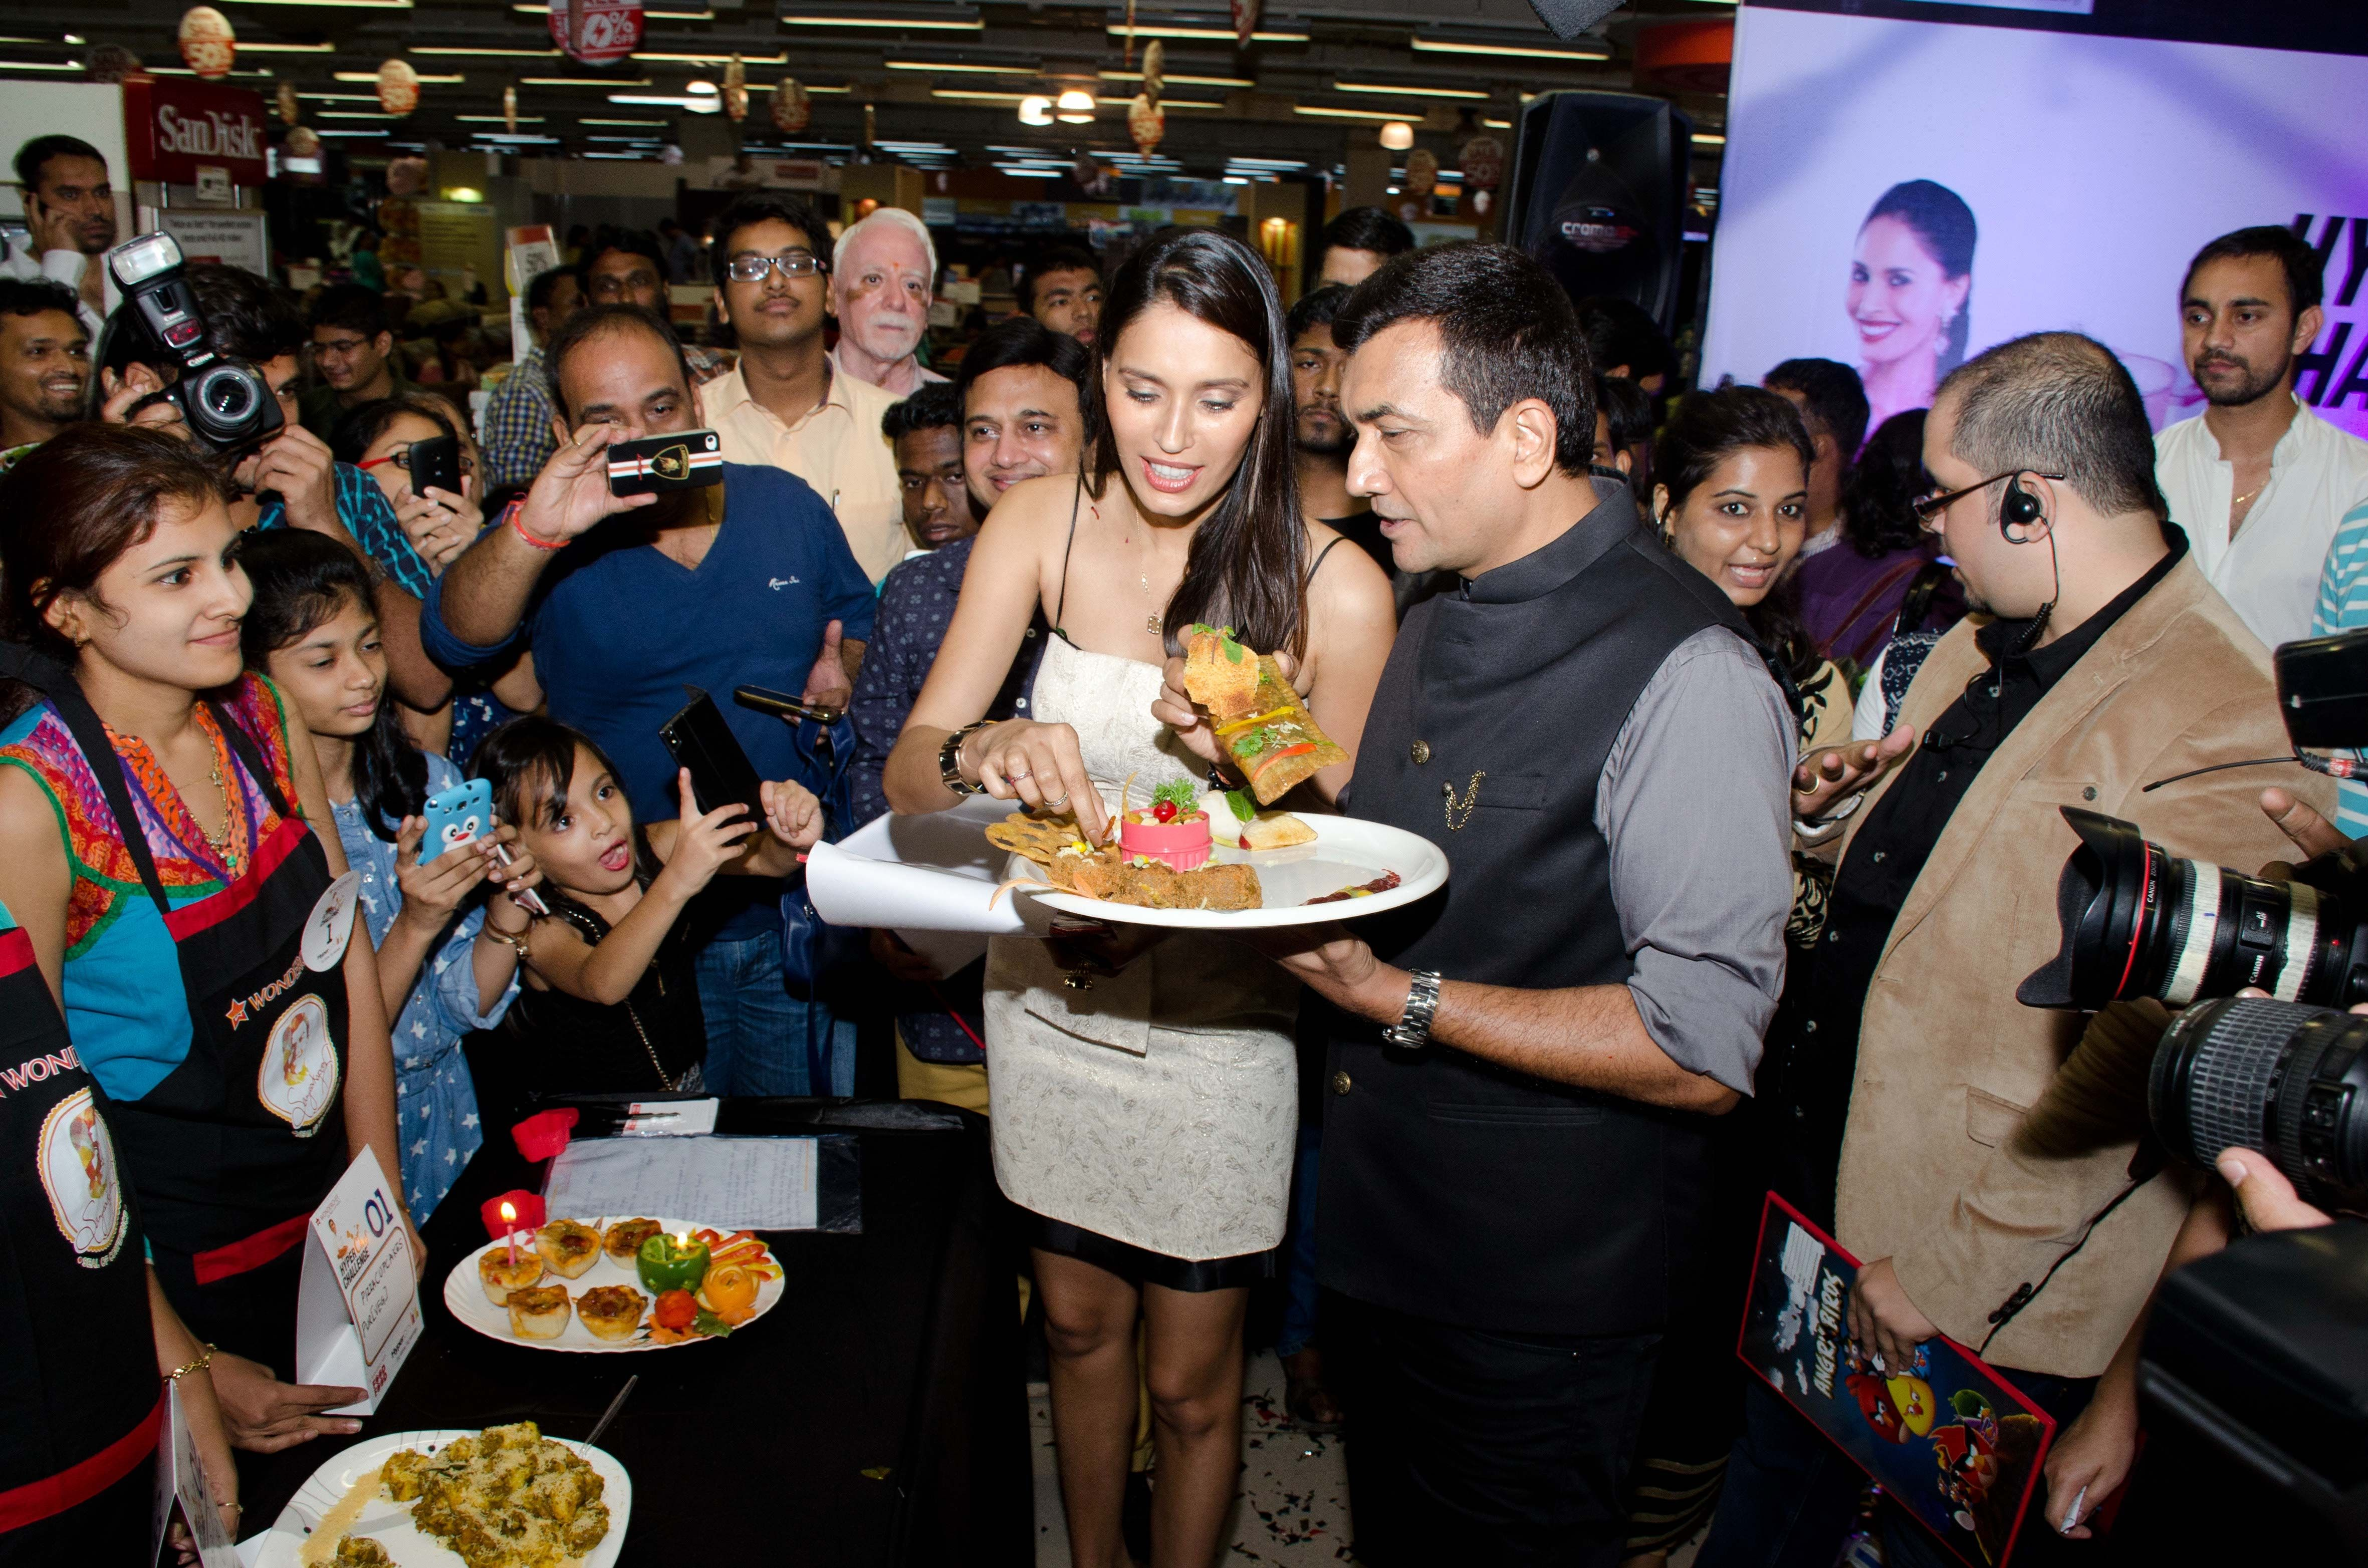 Chef sanjeev kapoor announces the winners of the hyperchef l r supermodel ujjwala raut and chef sanjeev kapoor at hypercity hyperchef challenge food tasting forumfinder Image collections